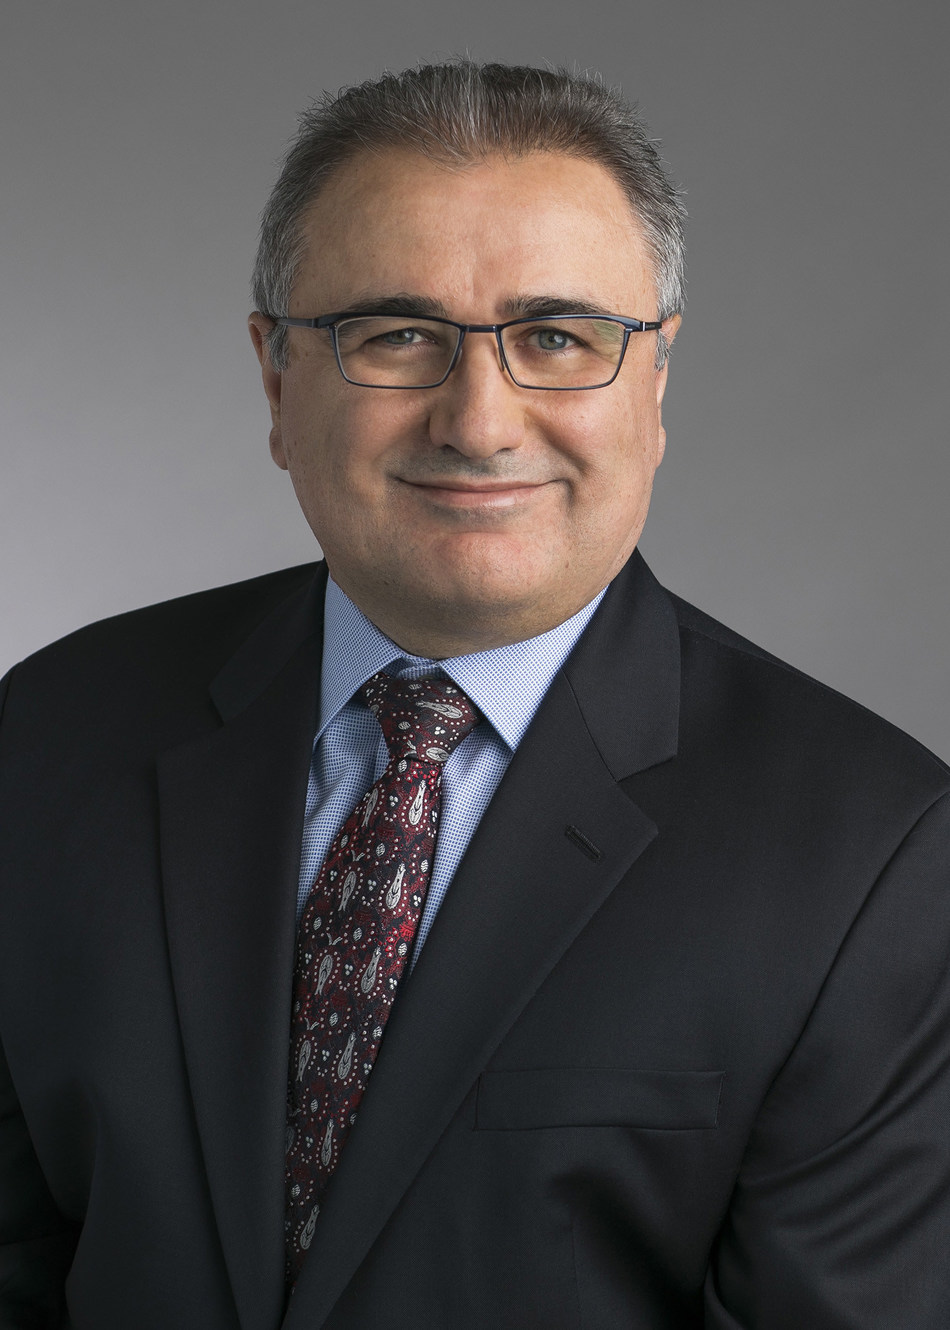 Erkut Bahceci, M.D., was promoted to vice president of Medical Science for Hematology in the Oncology Therapeutic Area at Astellas